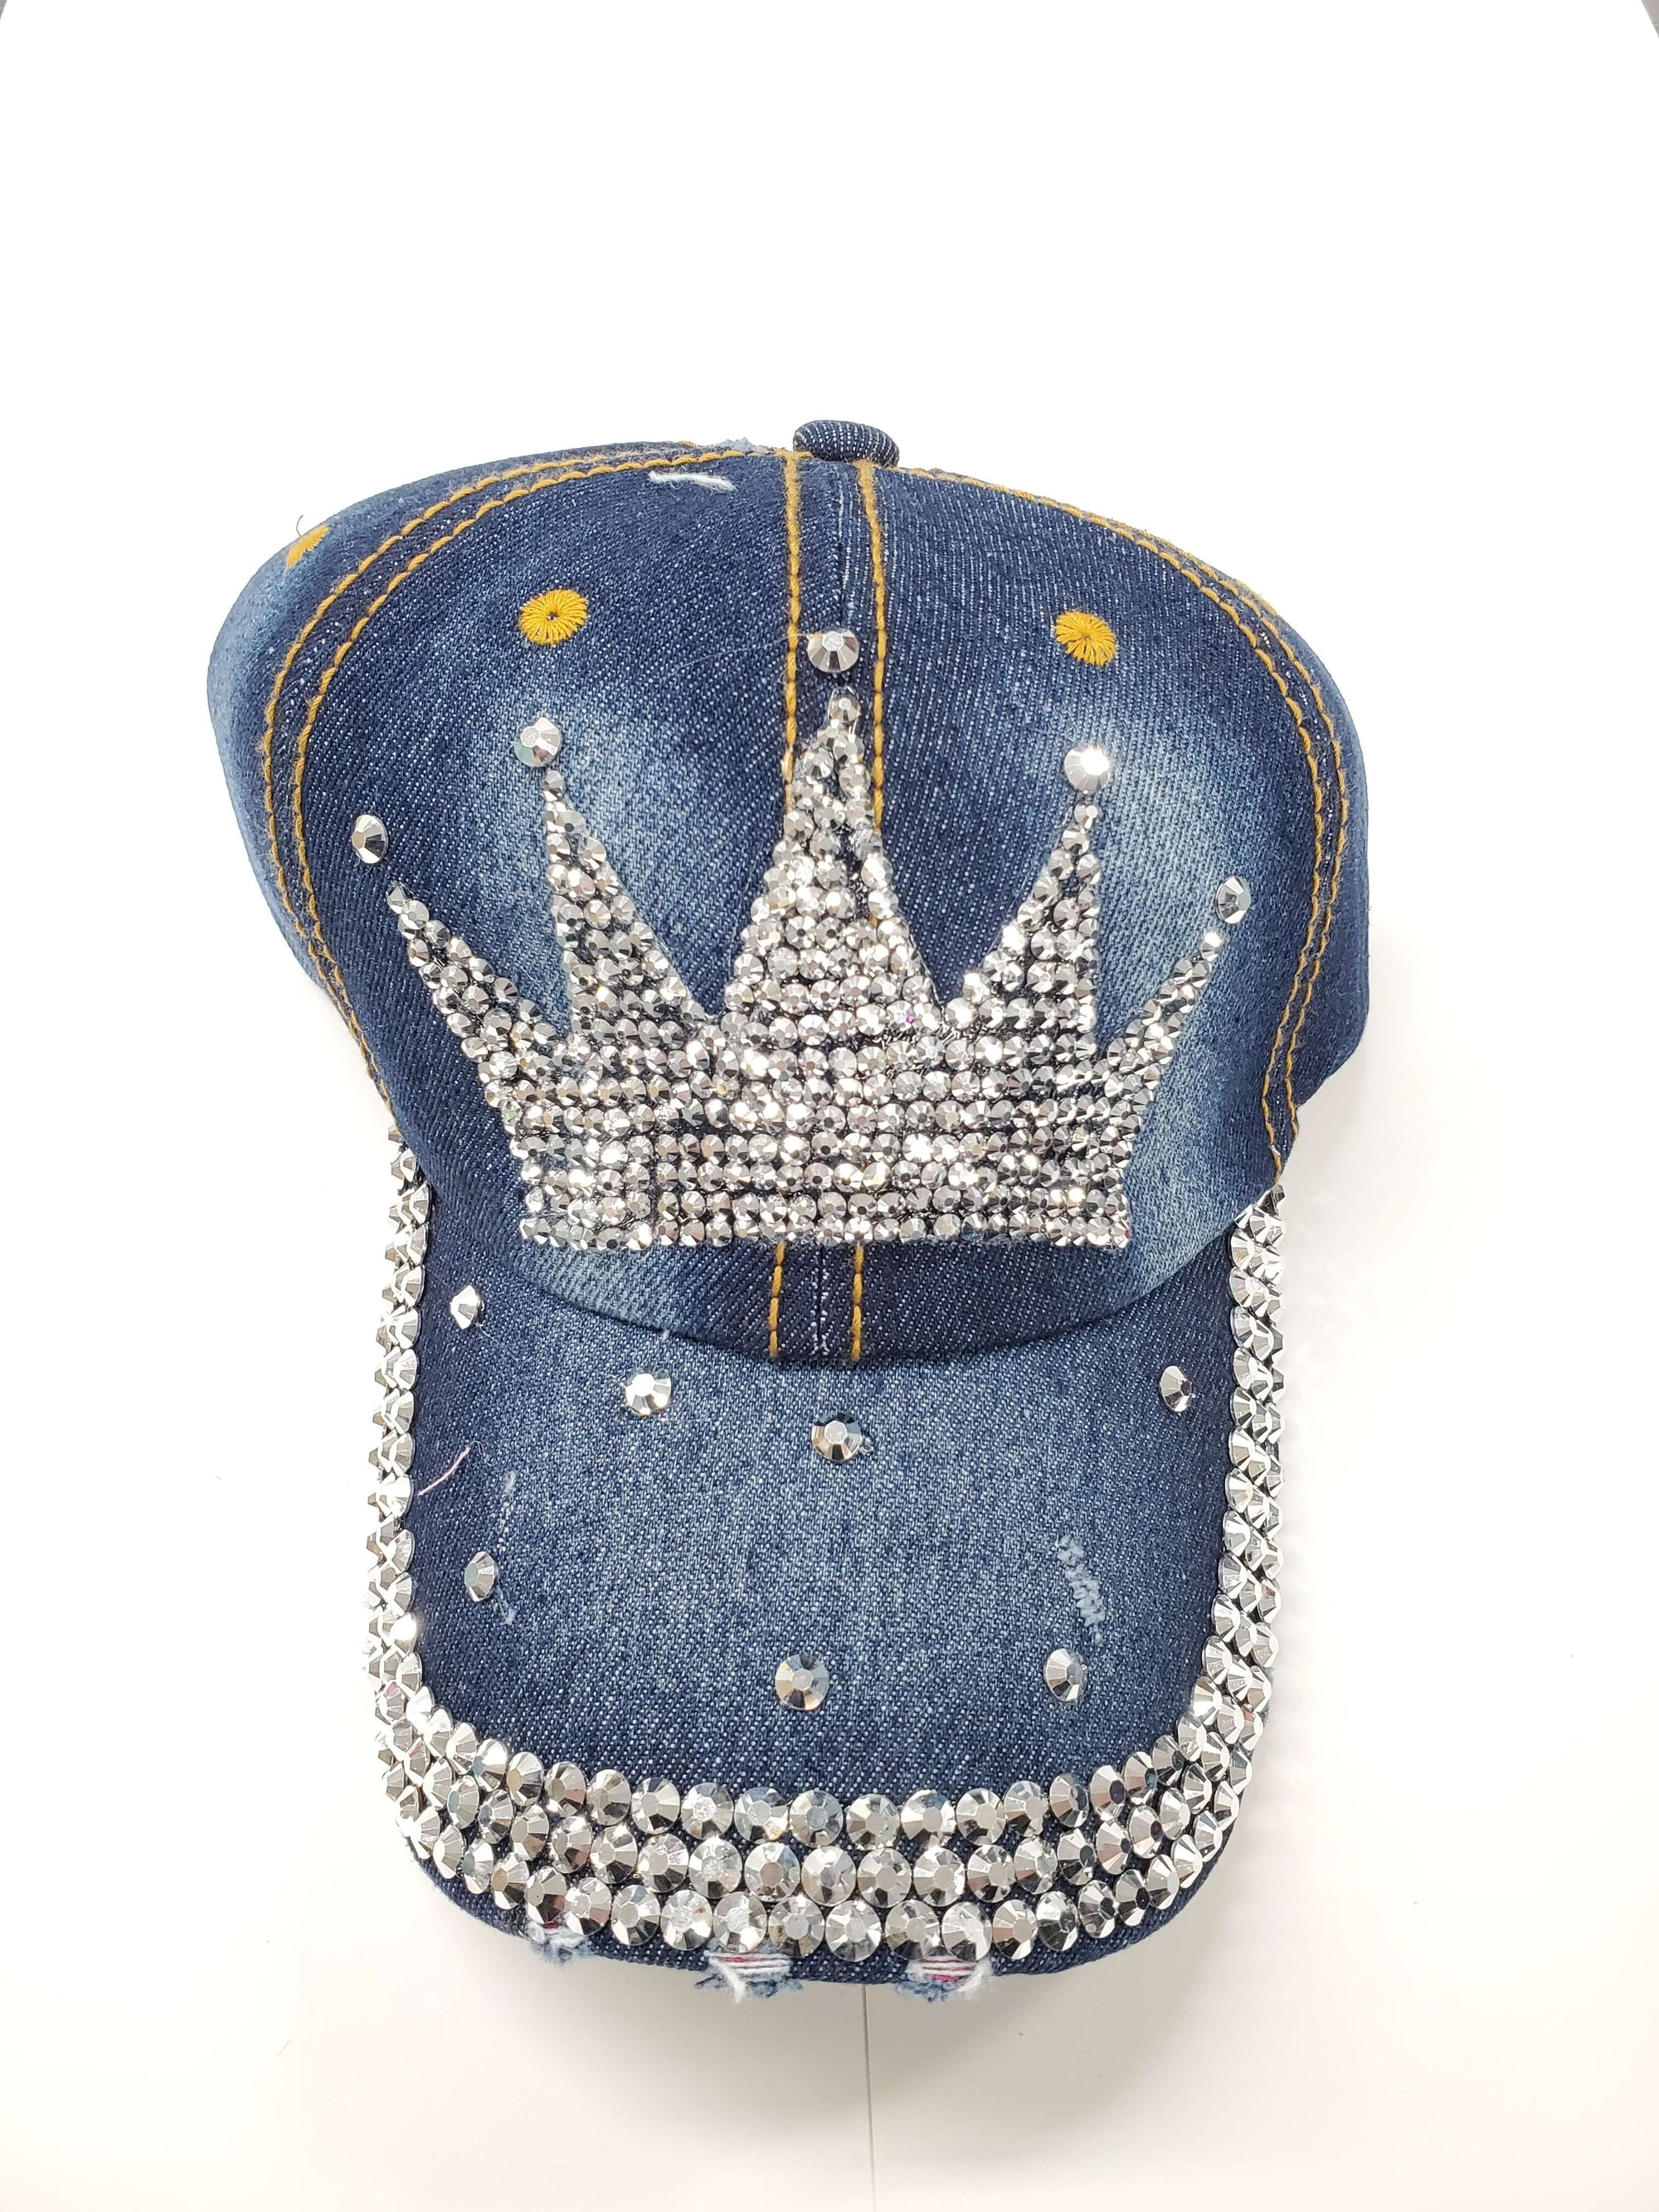 crown-wholesale-denim-rhinestone-hats